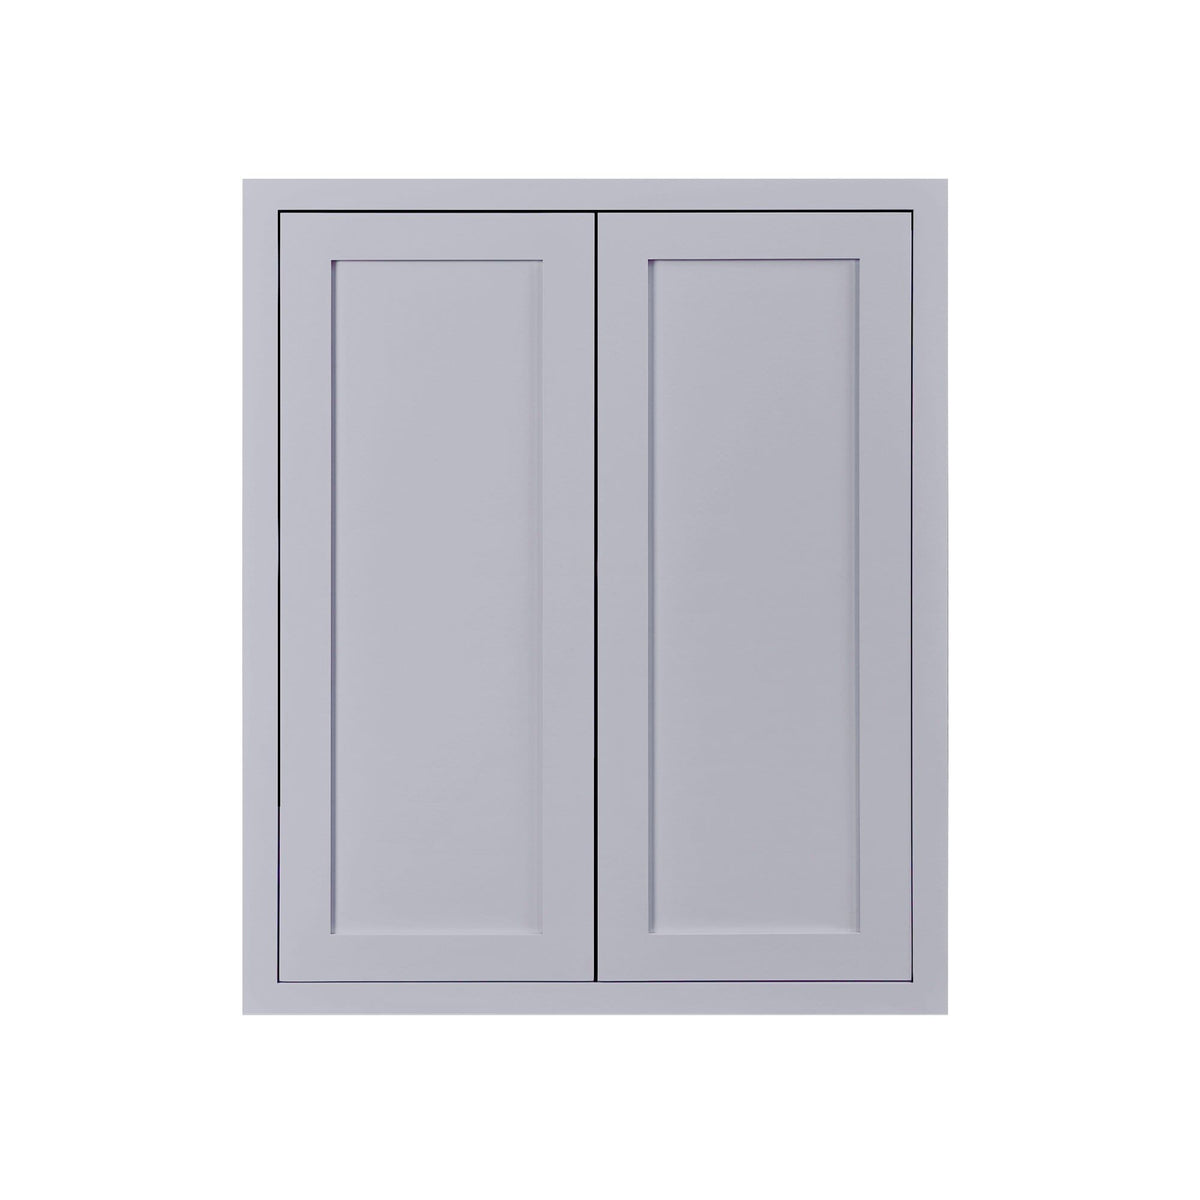 "30"" Tall Wall Cabinet 30"" Tall Light Gray Inset Shaker Wall Cabinet - Double Door - 24"", 27"", 30"", 33"" & 36"" D2W273014 Inset Kitchen Cabinets"